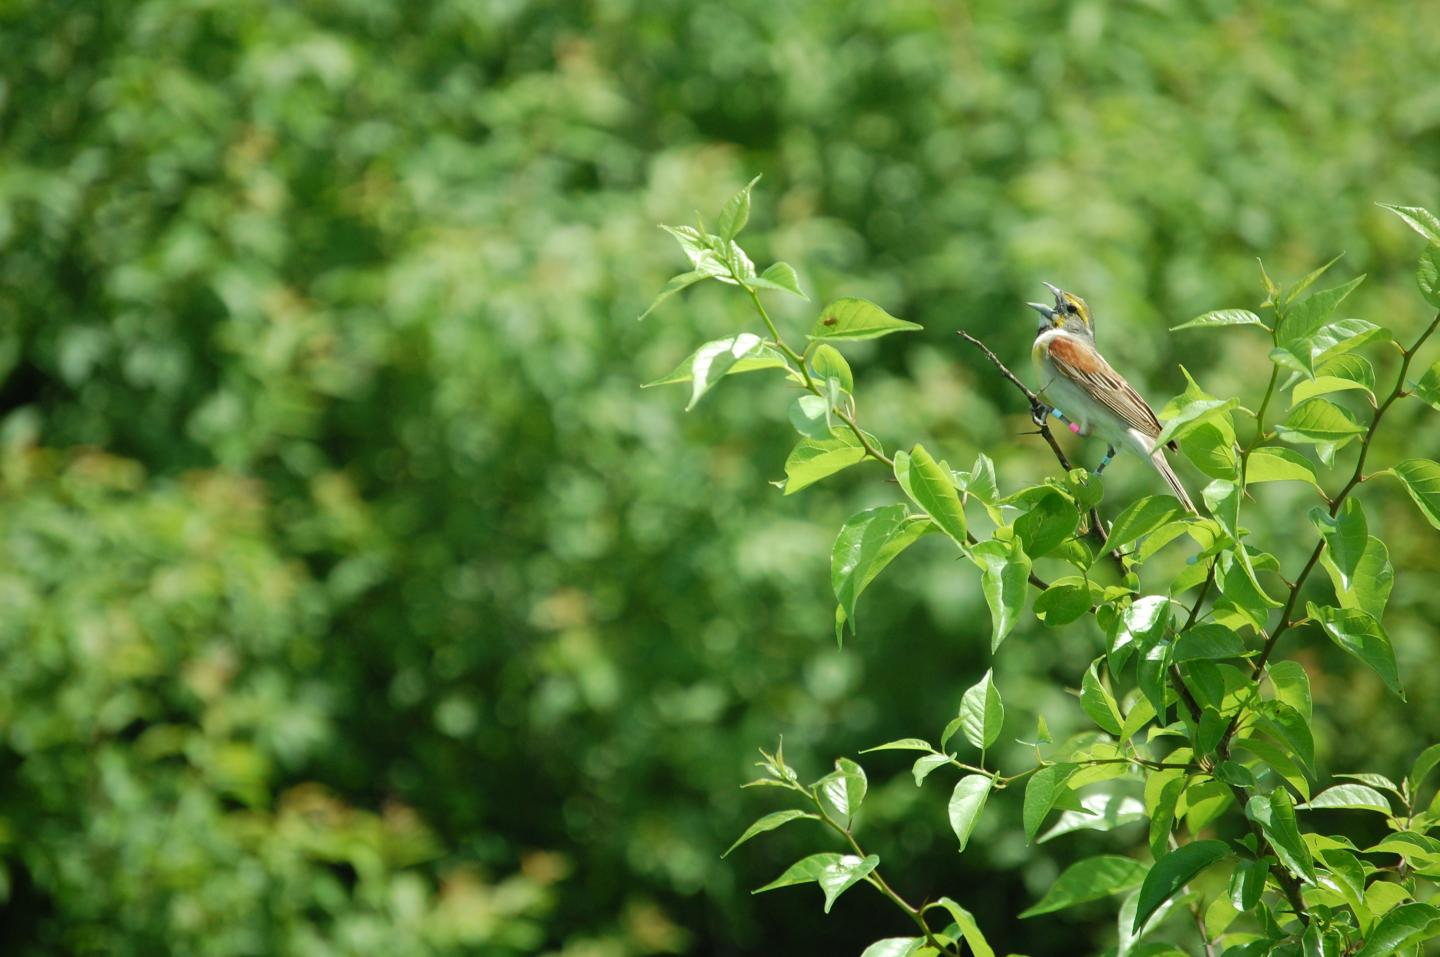 Dickcissel Parent Caught on Camera Committing Infanticide